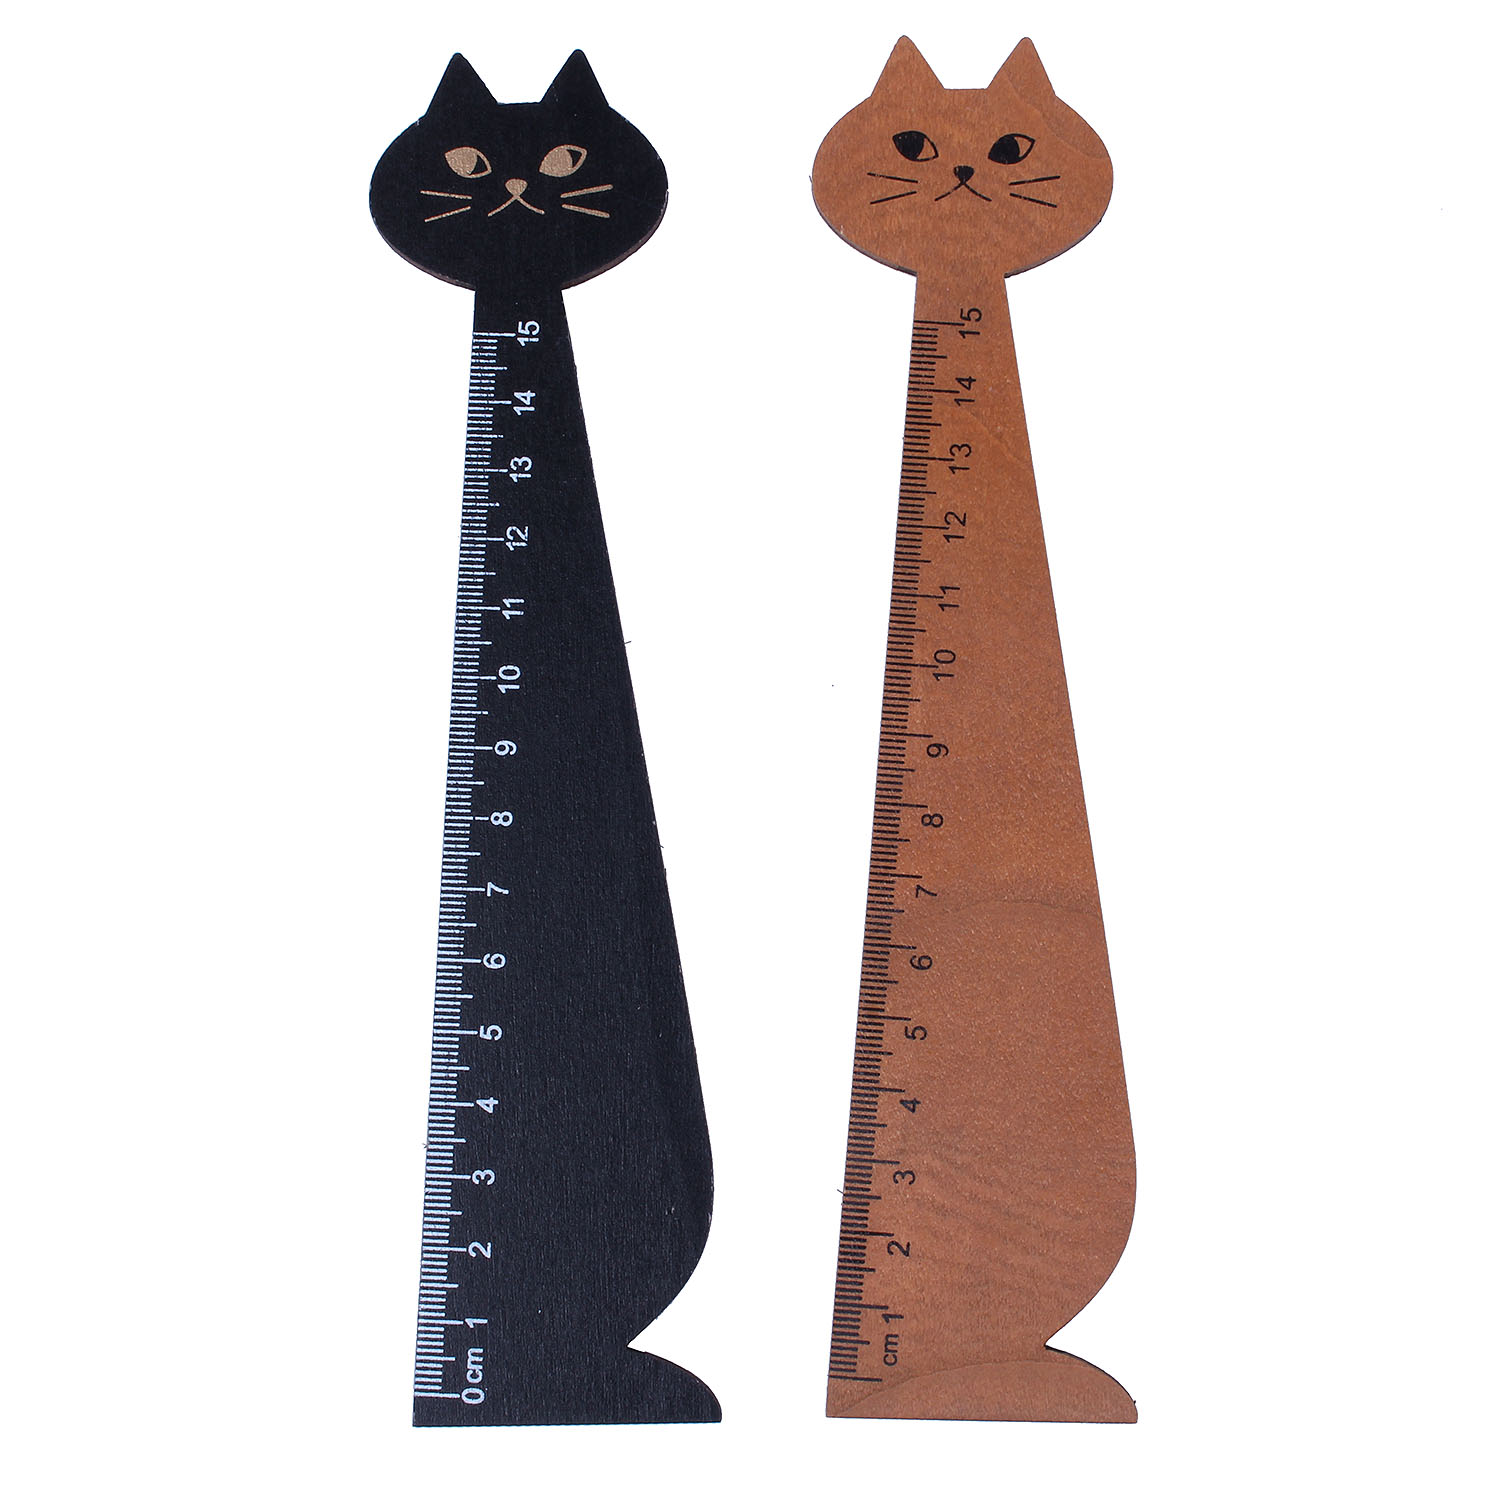 2 Pcs 15 Cm Wood Straight Ruler Beautiful Cat Form Ruler For Kids School (Black, Yellow)